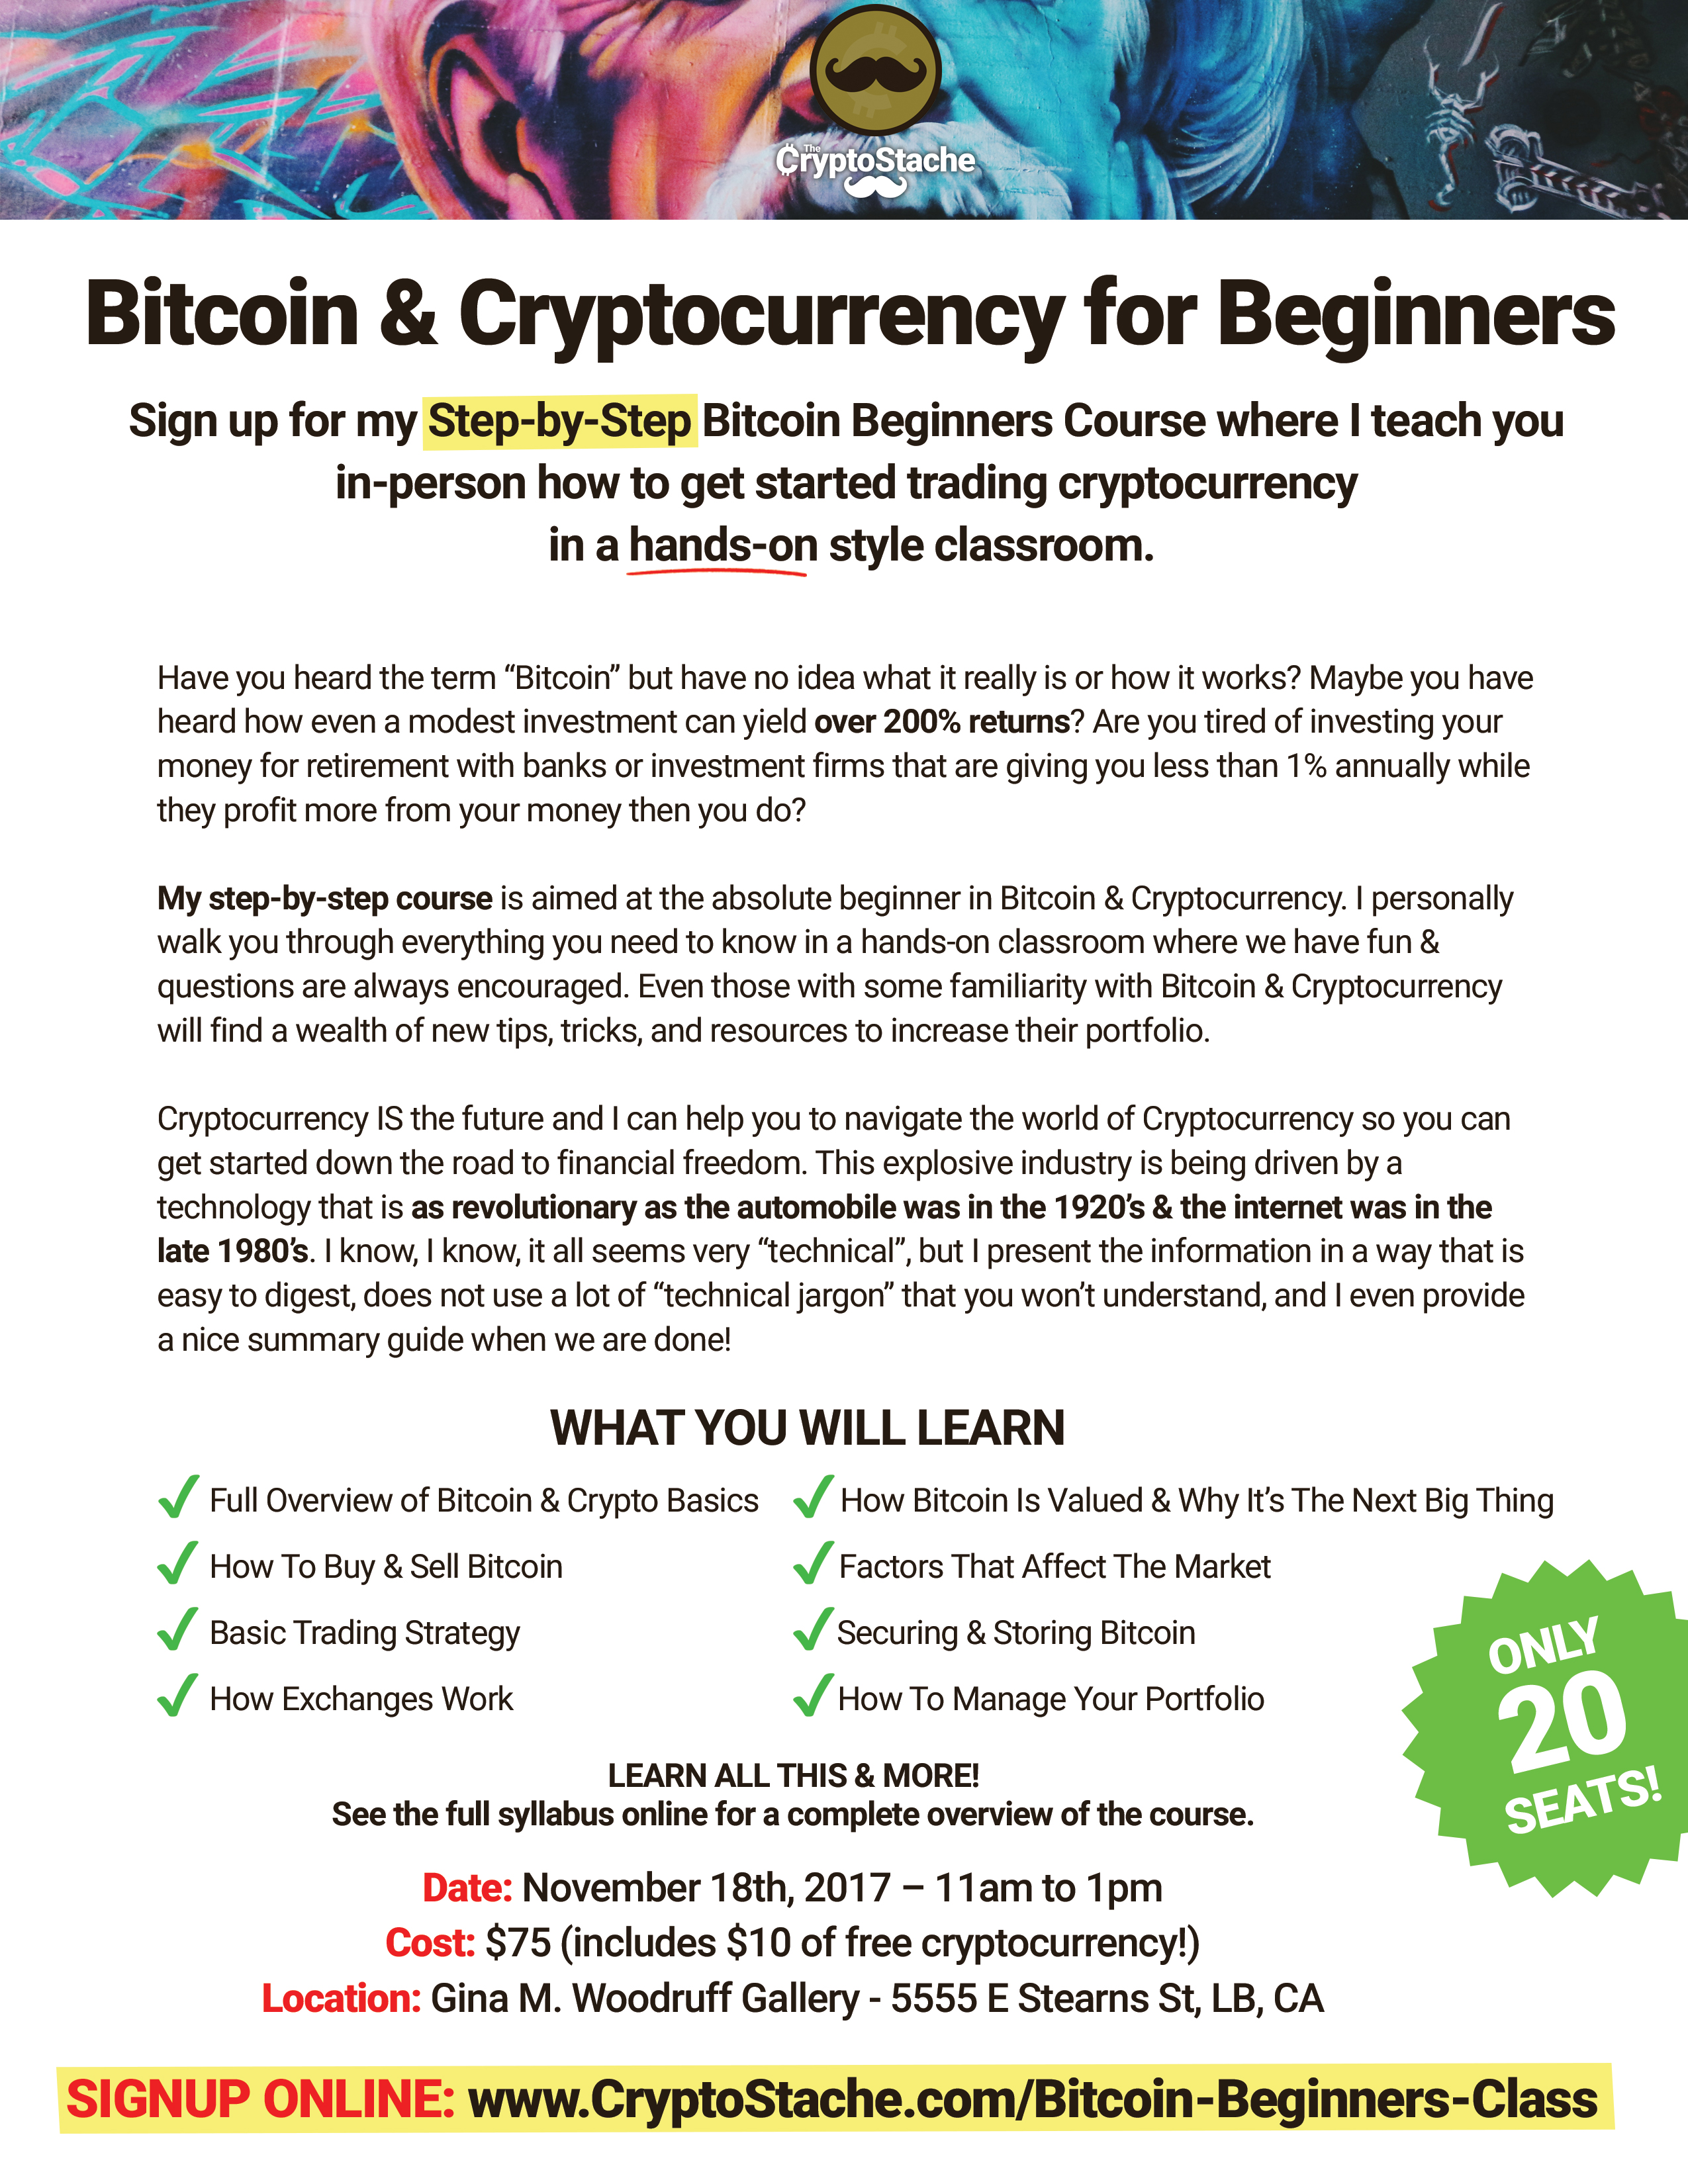 Crypto trading for beginners course